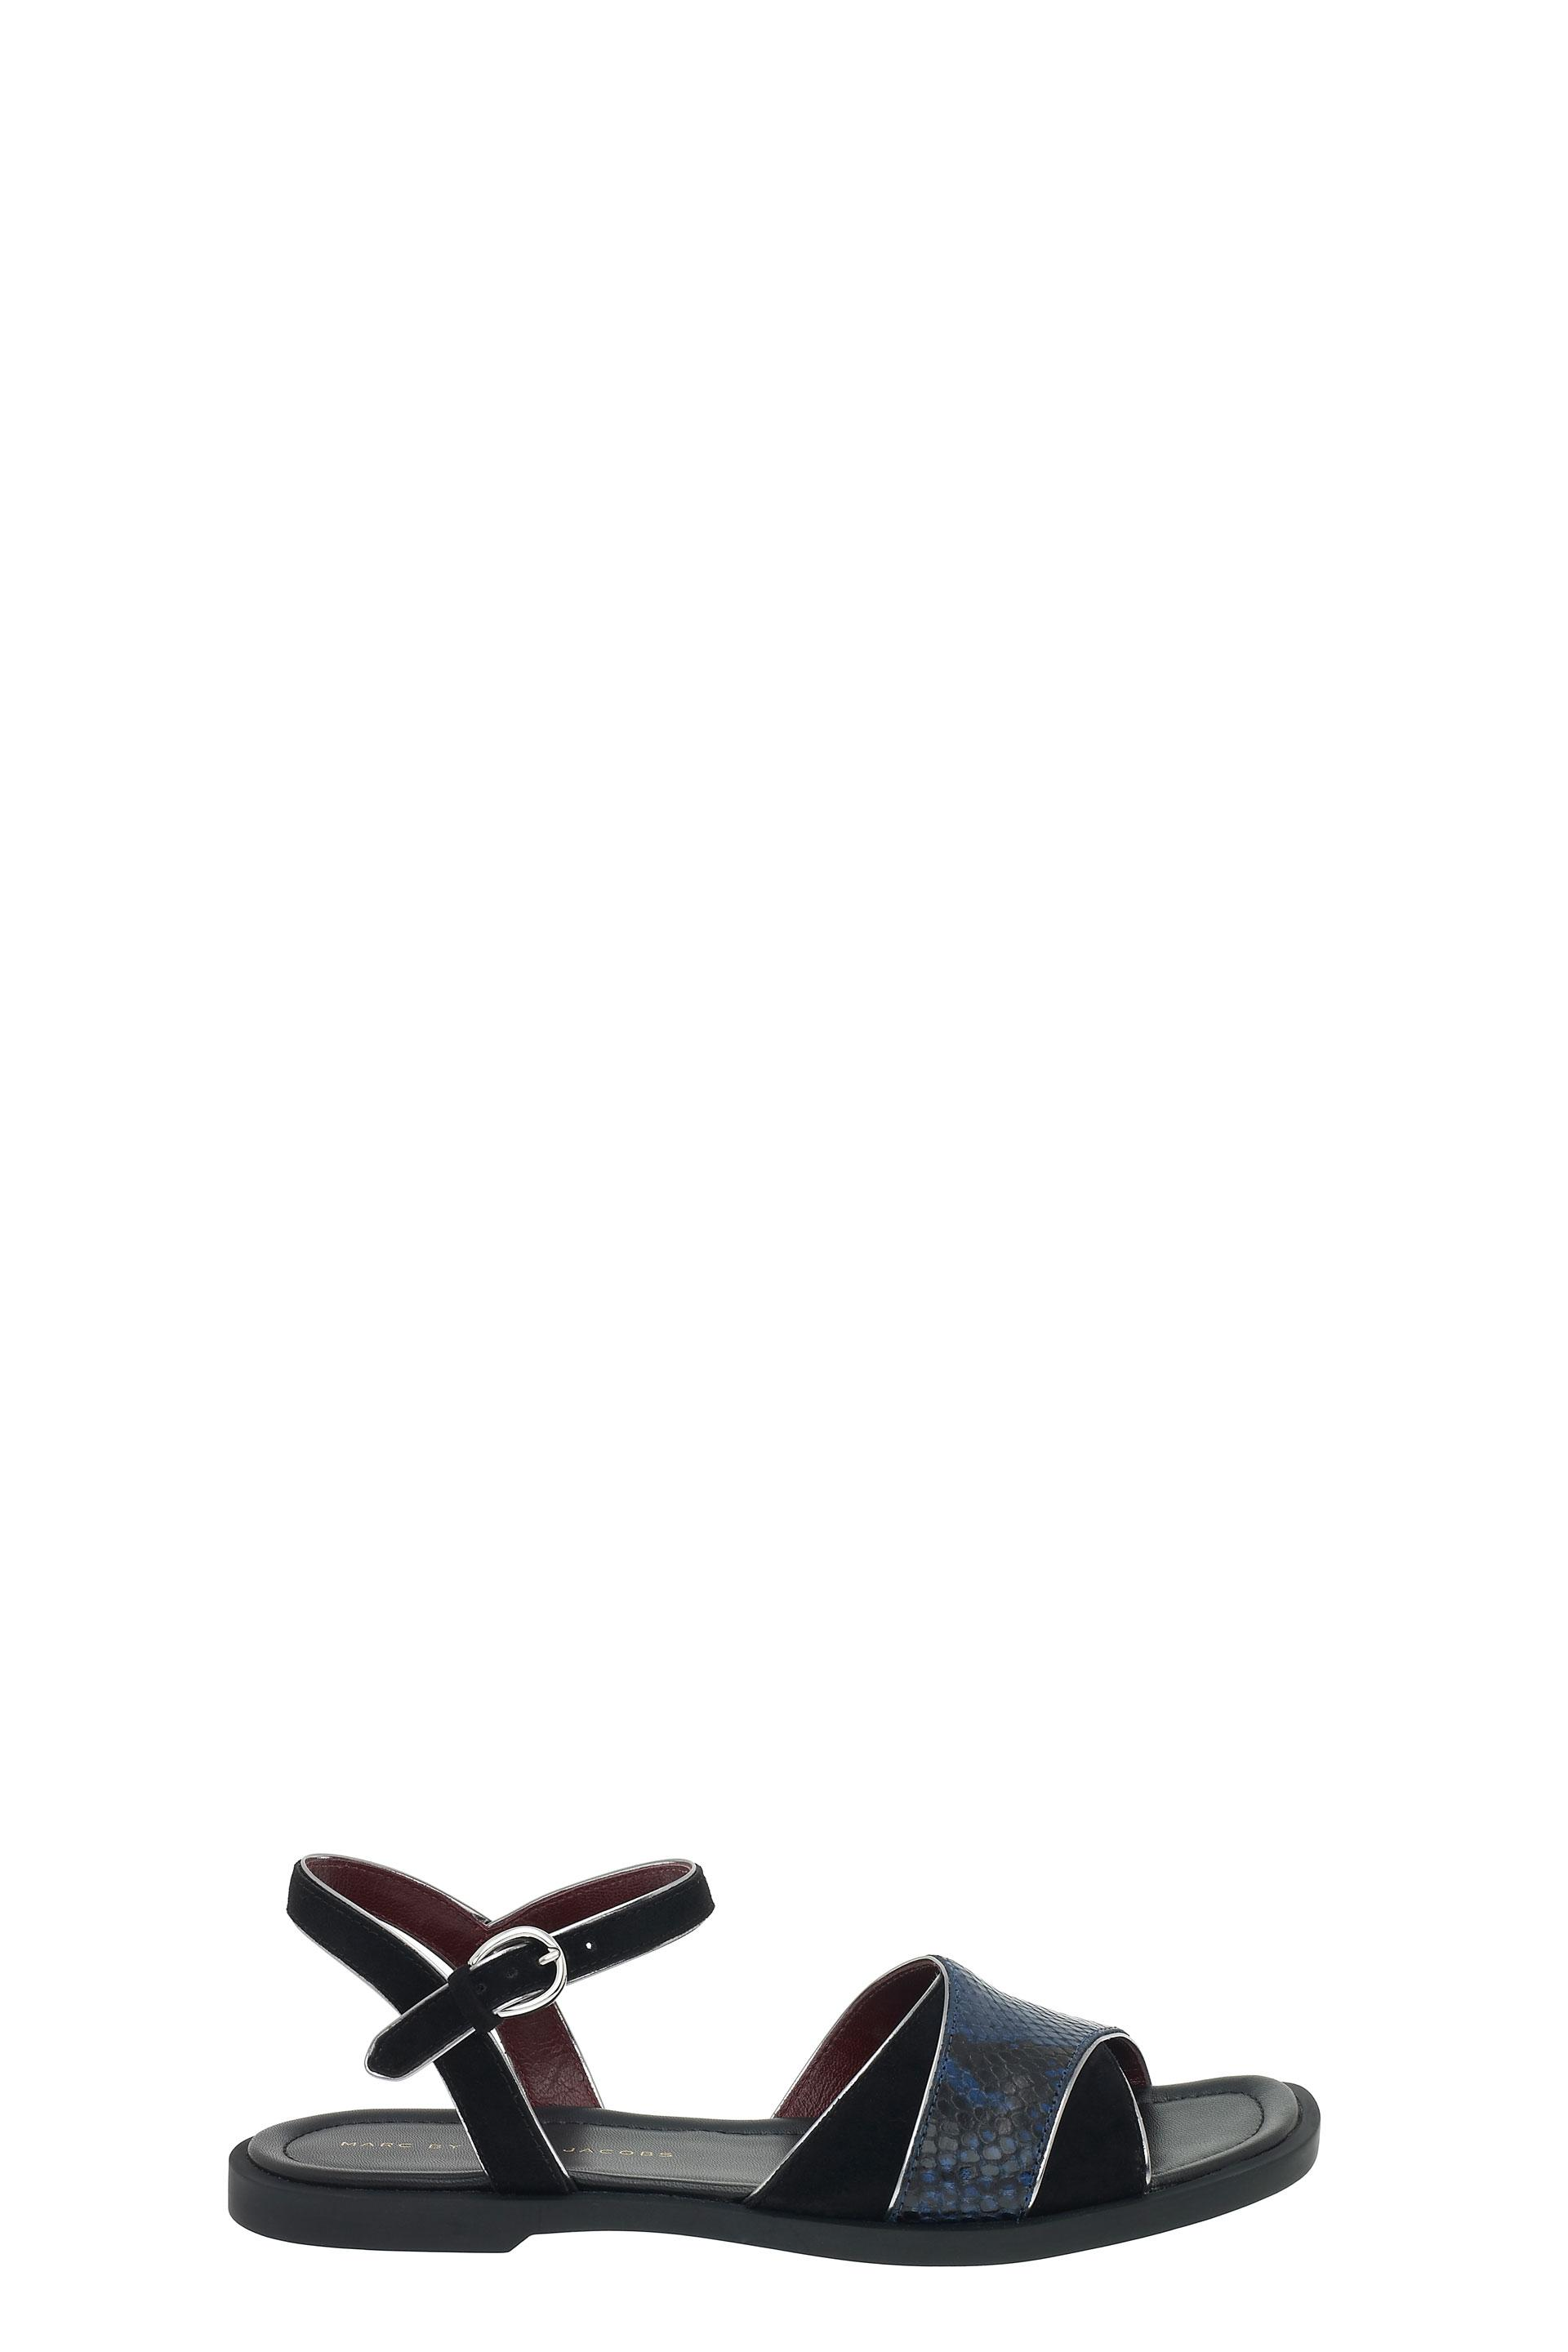 Marc By Marc Jacobs Embossed Ankle Strap Flat Sandals In Navy